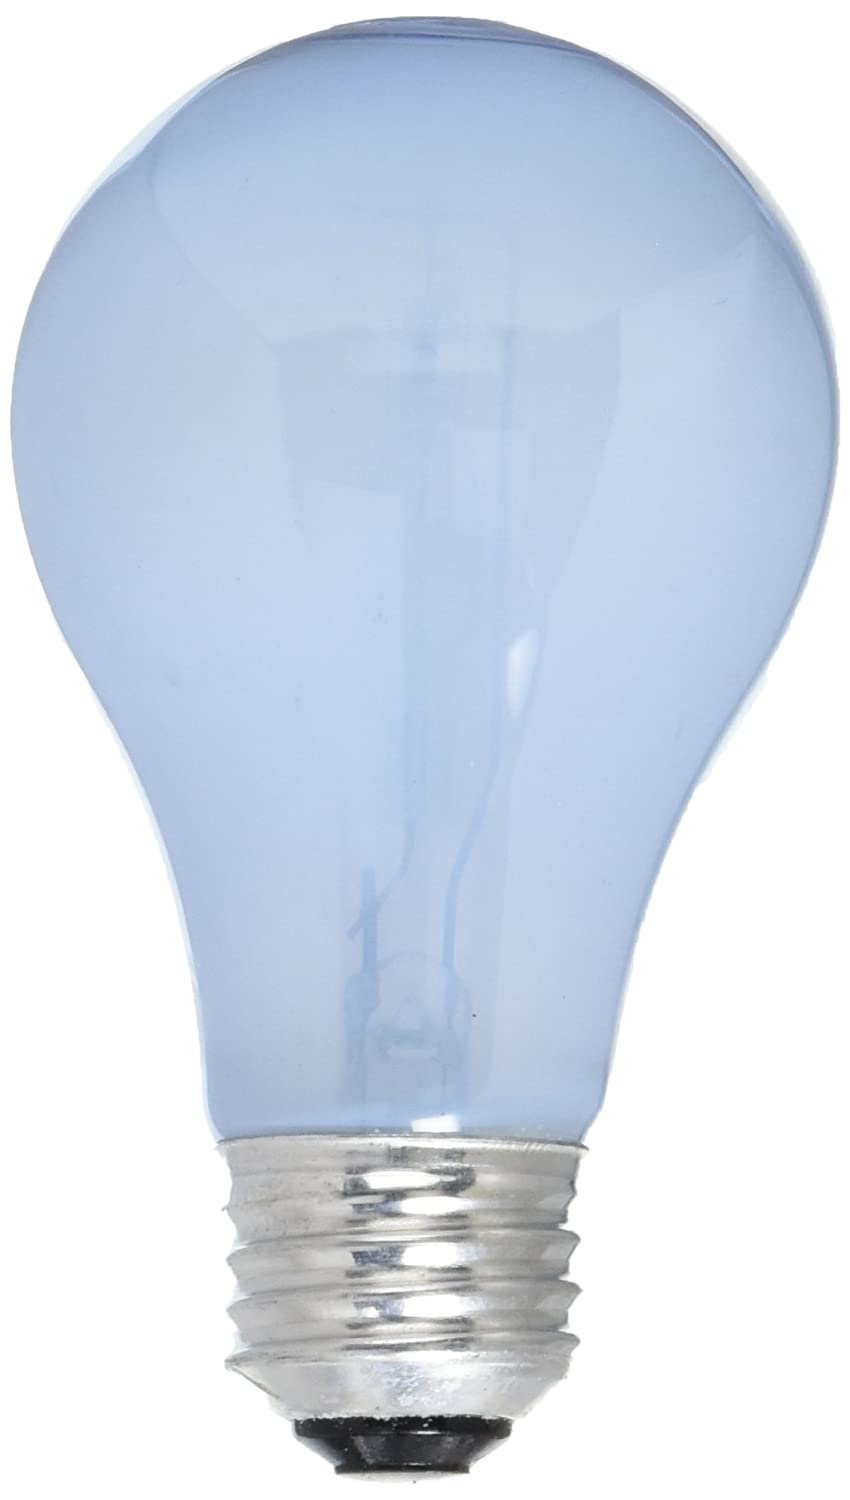 GE Lighting 67773 Reveal 53-Watt, 790-Lumen A19 Light Bulb with Medium Base, 4-Pack